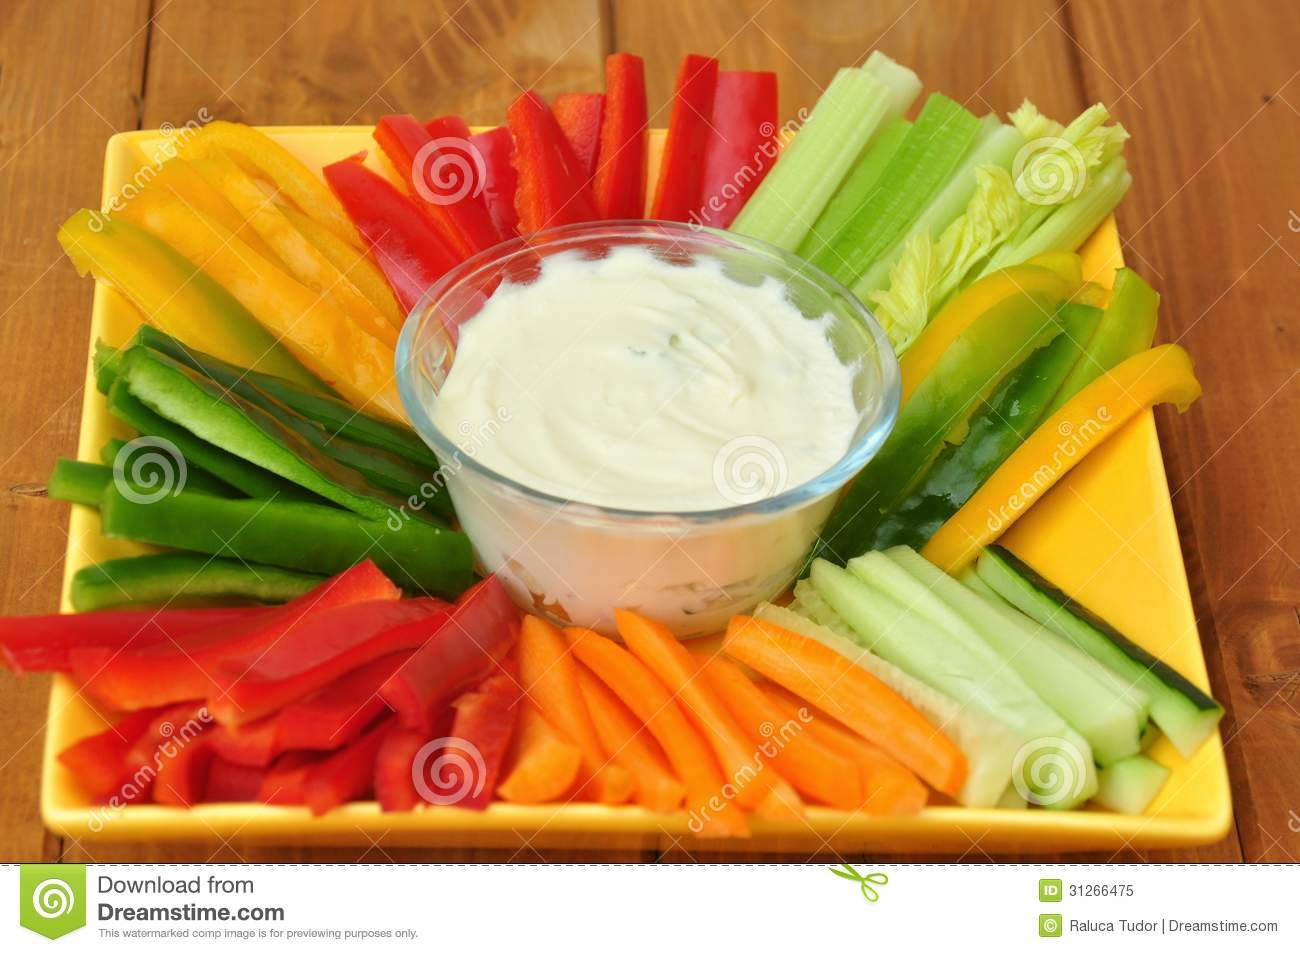 Raw food with vegetables and dip